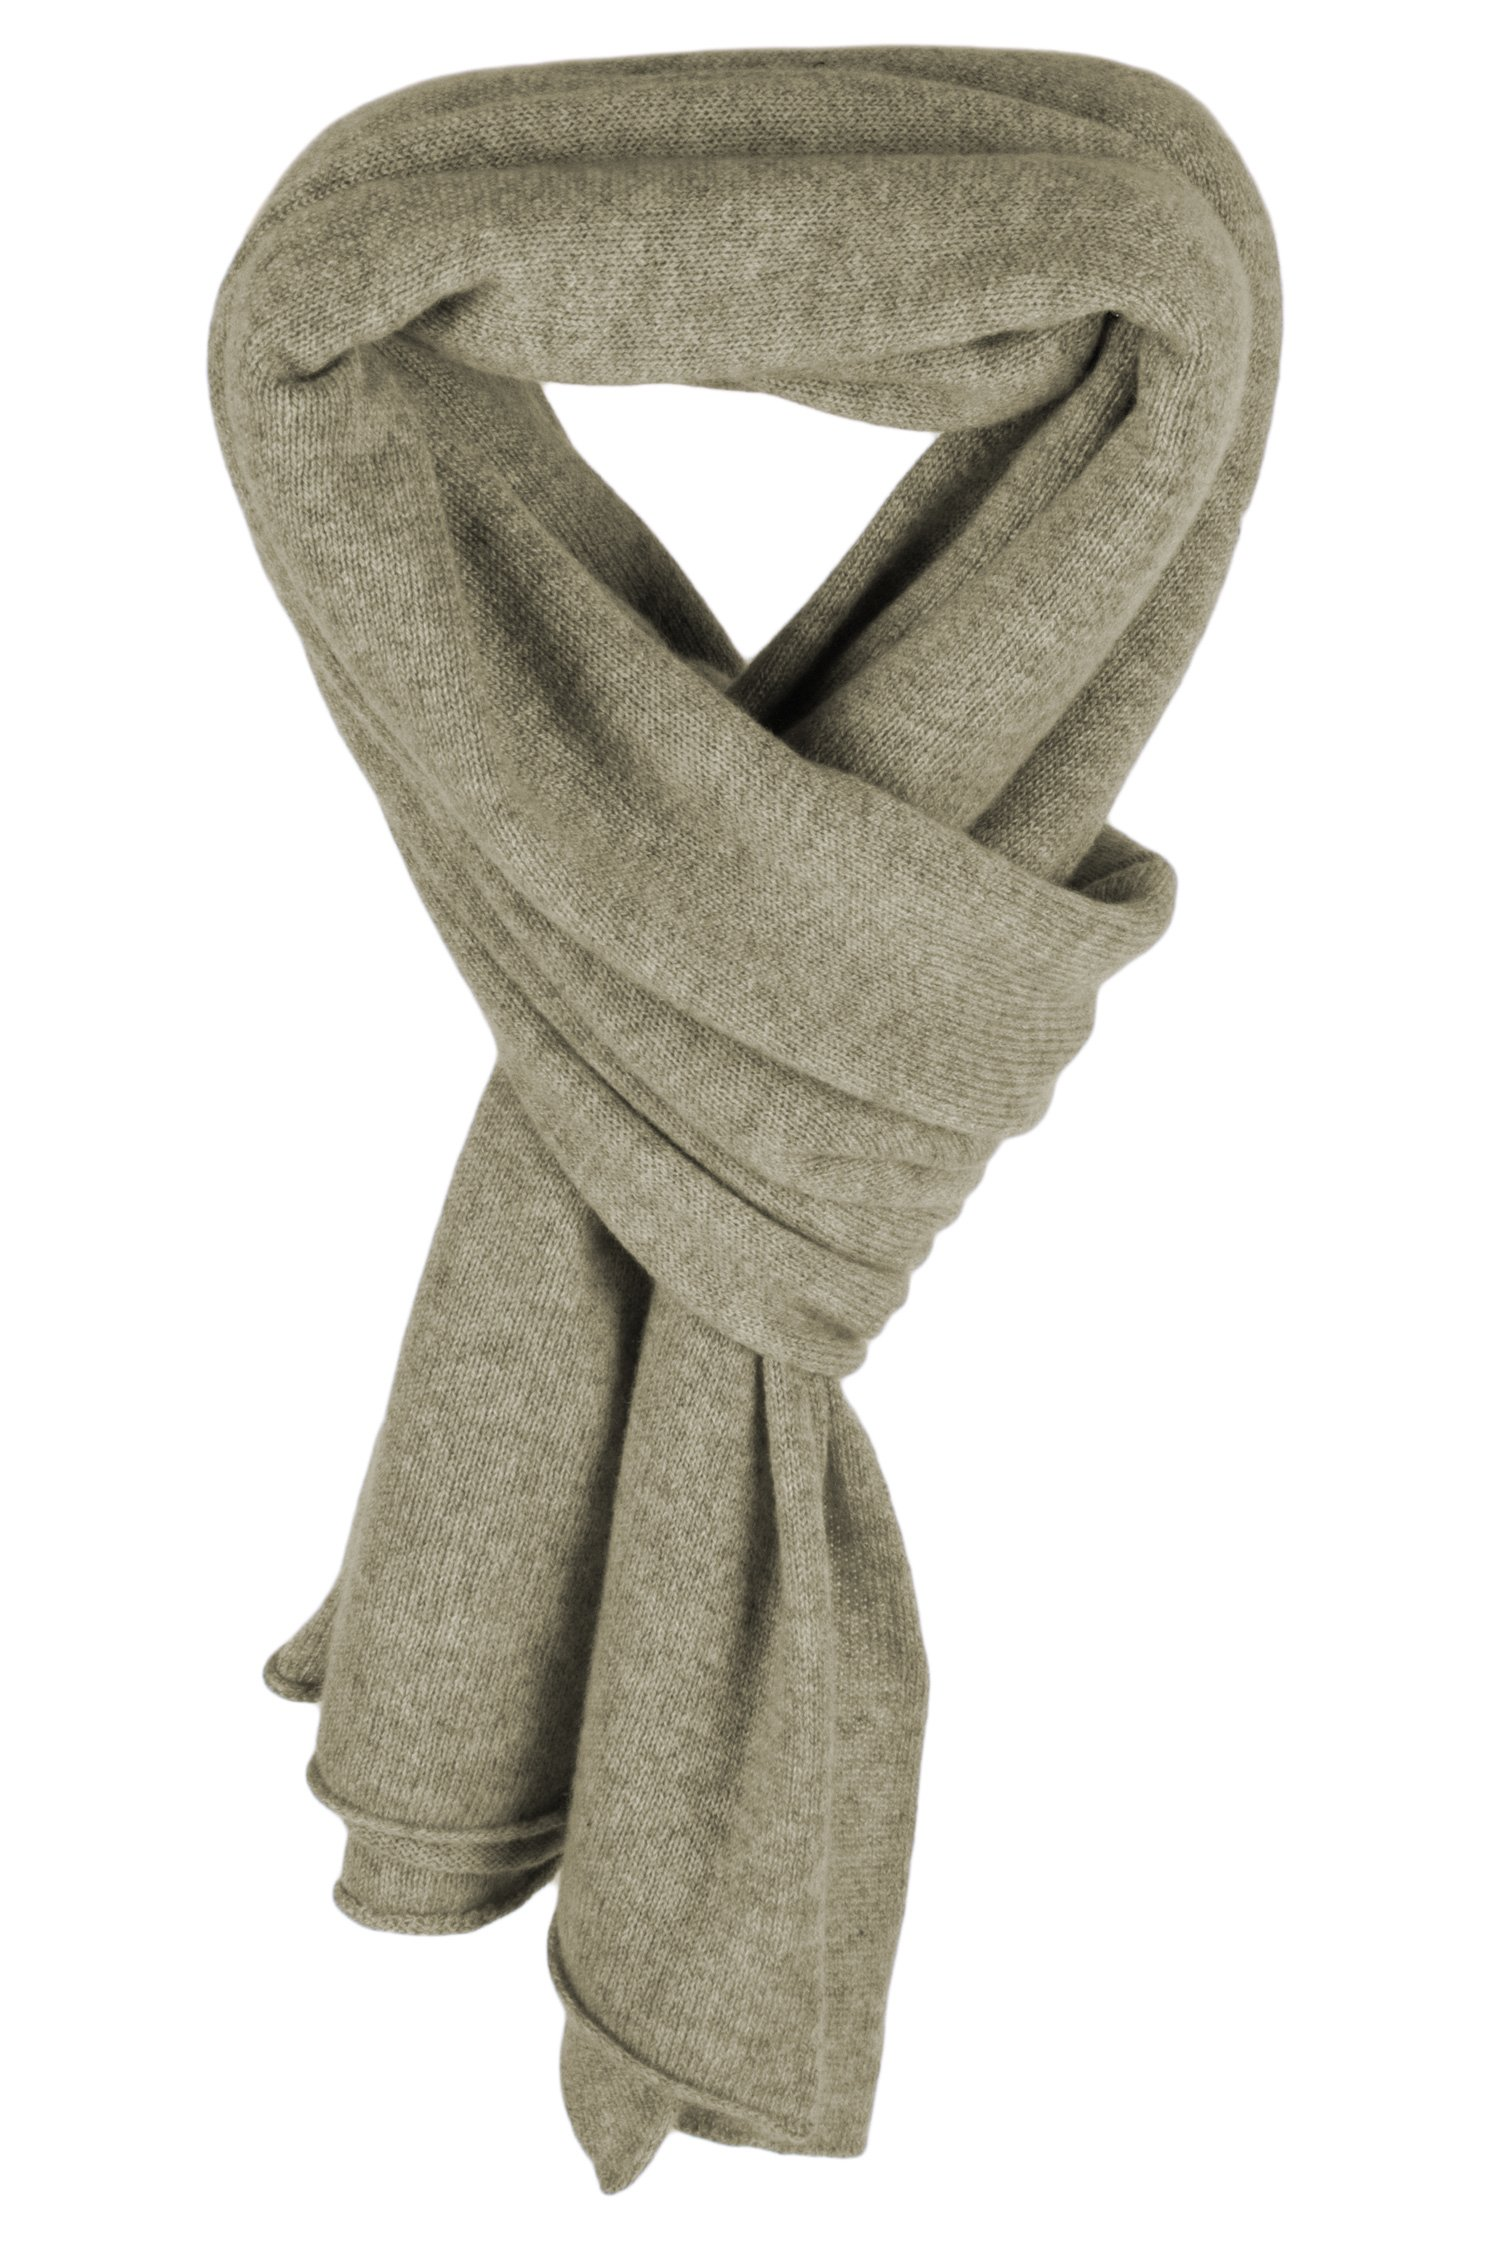 Ladies Cashmere Mix Wrap Scarf - Olive Leaf Green - made in Scotland by Love Cashmere RRP $290